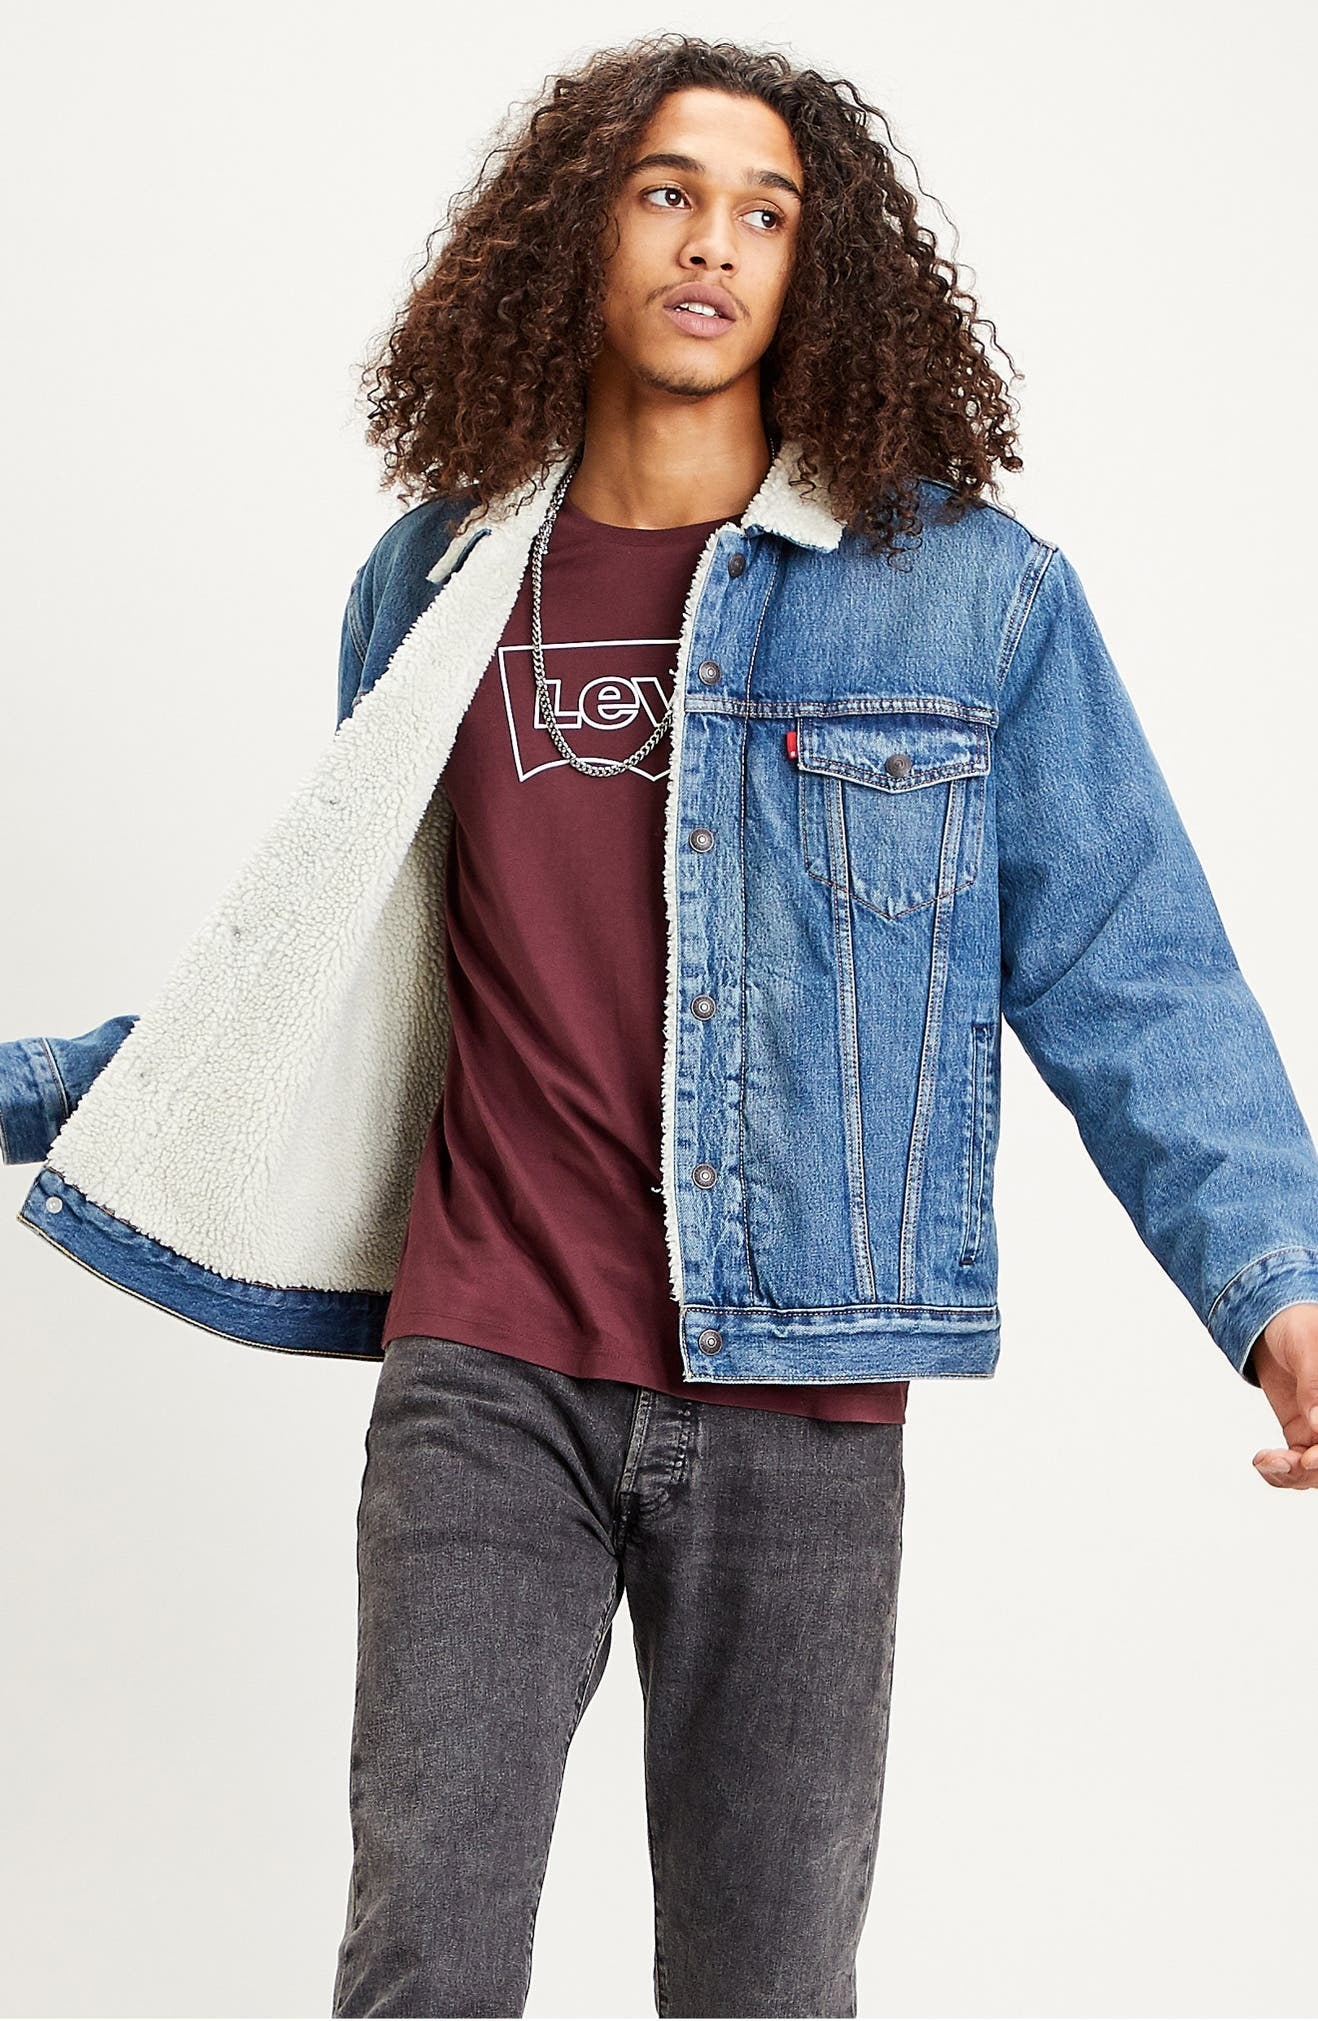 Model wearing the blue denim jacket with white faux fur in the inside and collar